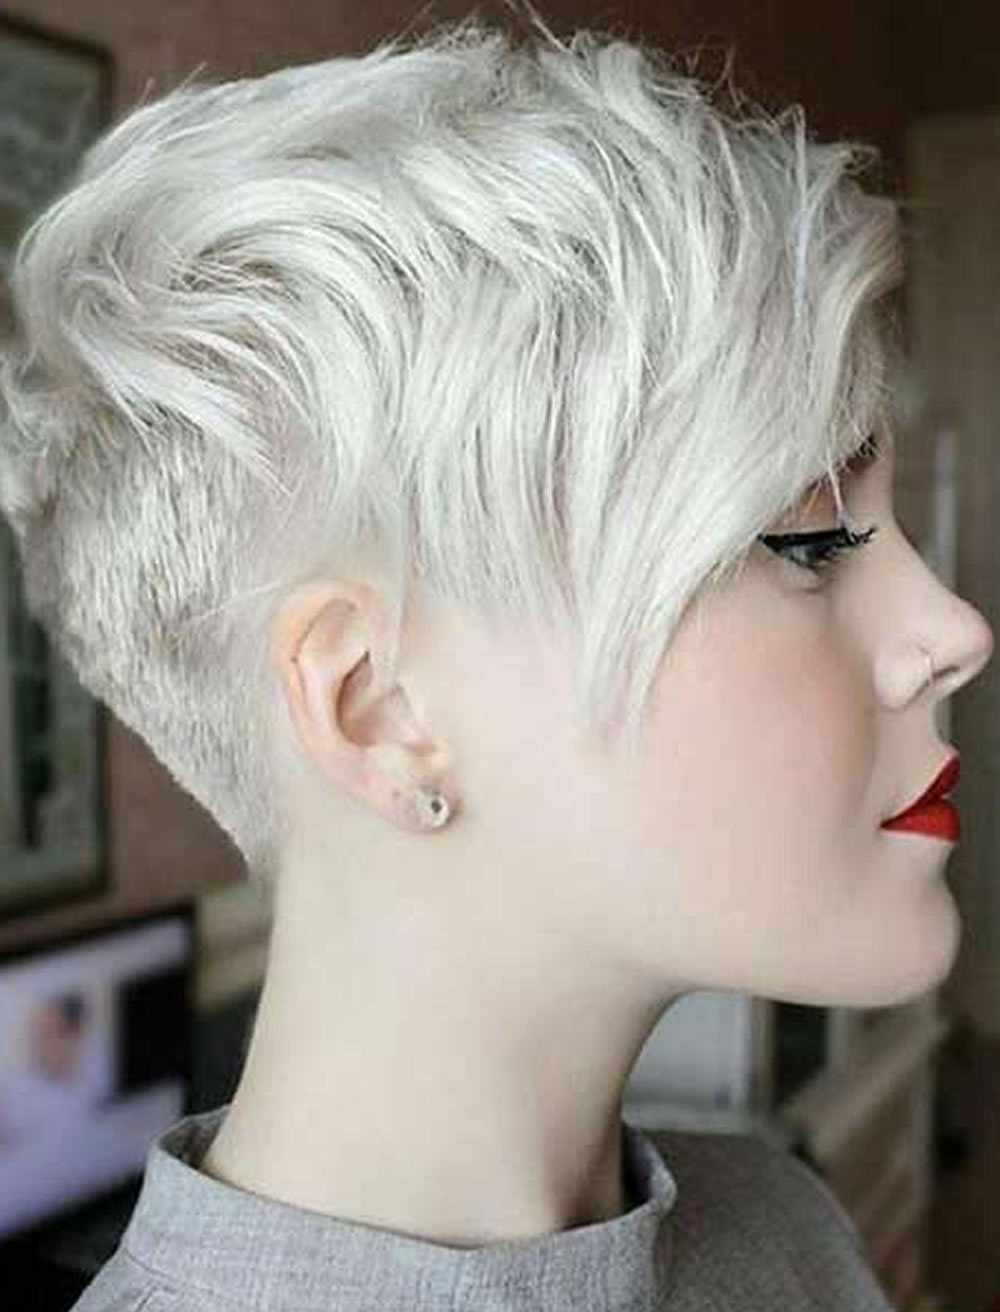 Gray Short Hair Pixie Hairstyles For Girls 2017 2018 – Hairstyles Throughout Gray Short Hairstyles (Gallery 9 of 25)